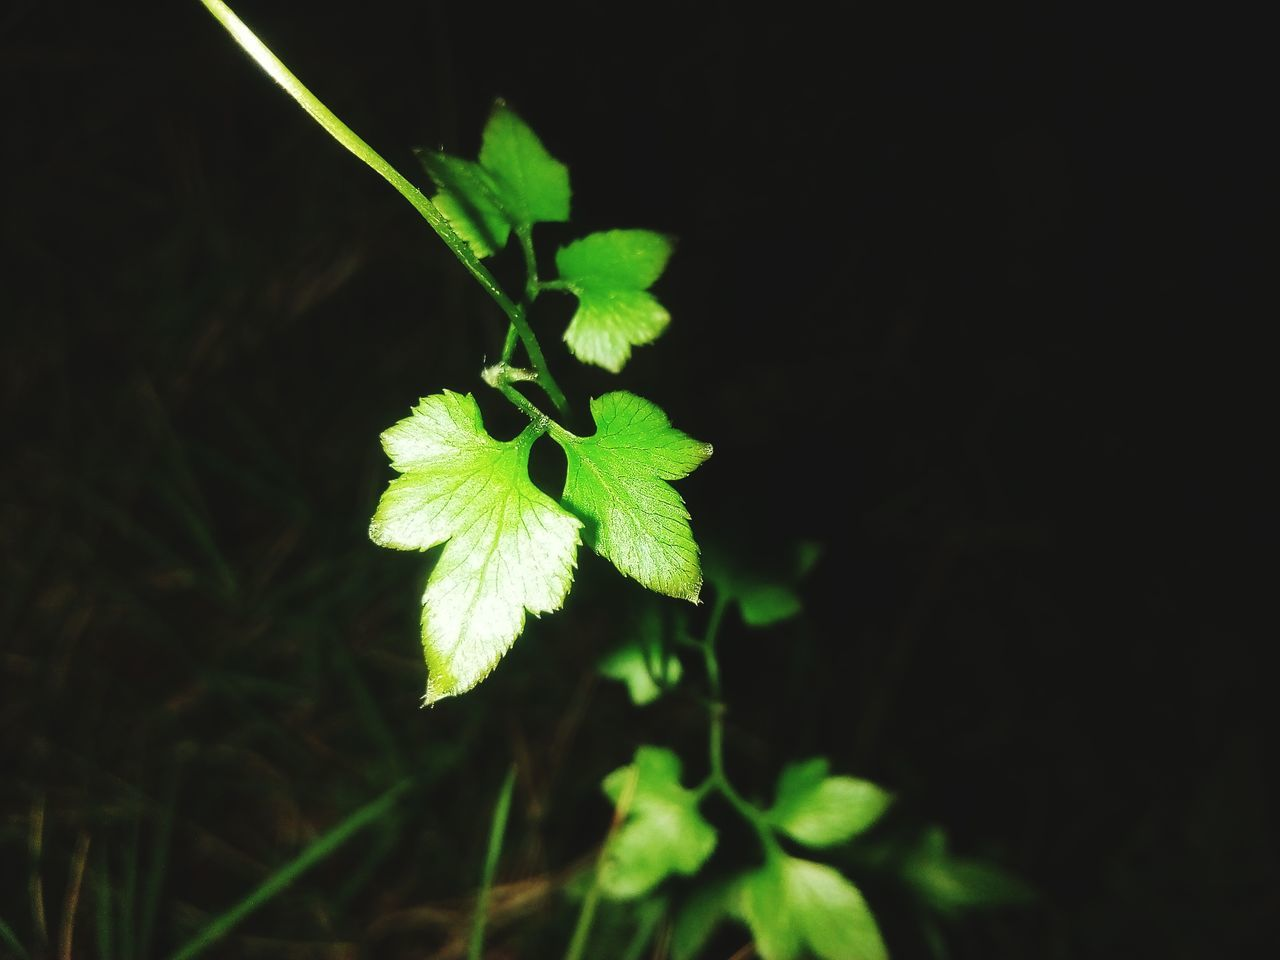 growth, plant, nature, leaf, green color, beauty in nature, fragility, freshness, no people, outdoors, night, flower, close-up, flower head